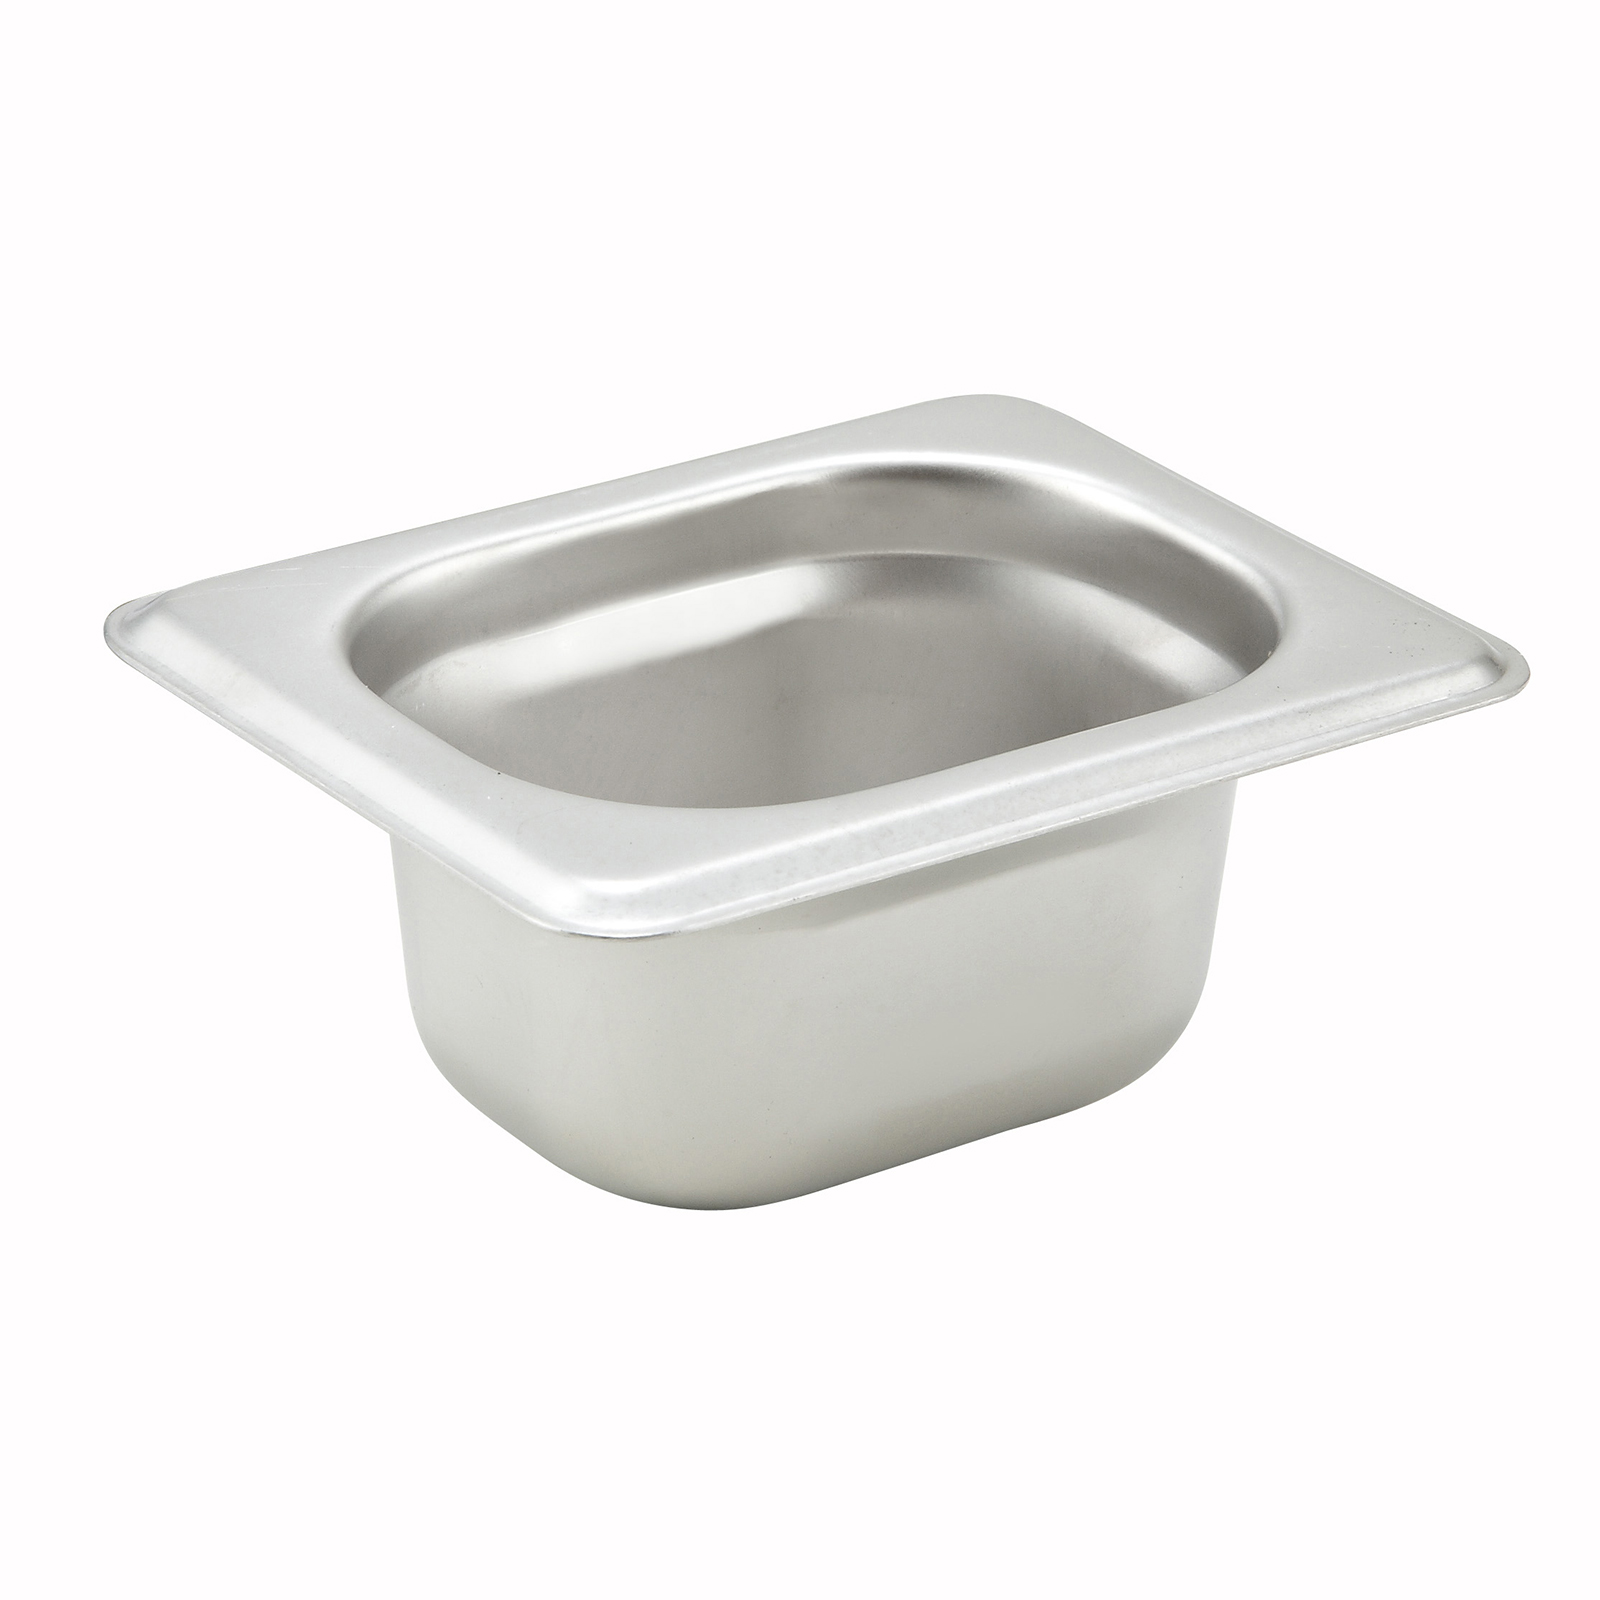 Winco SPJH-1802 steam table pan, stainless steel